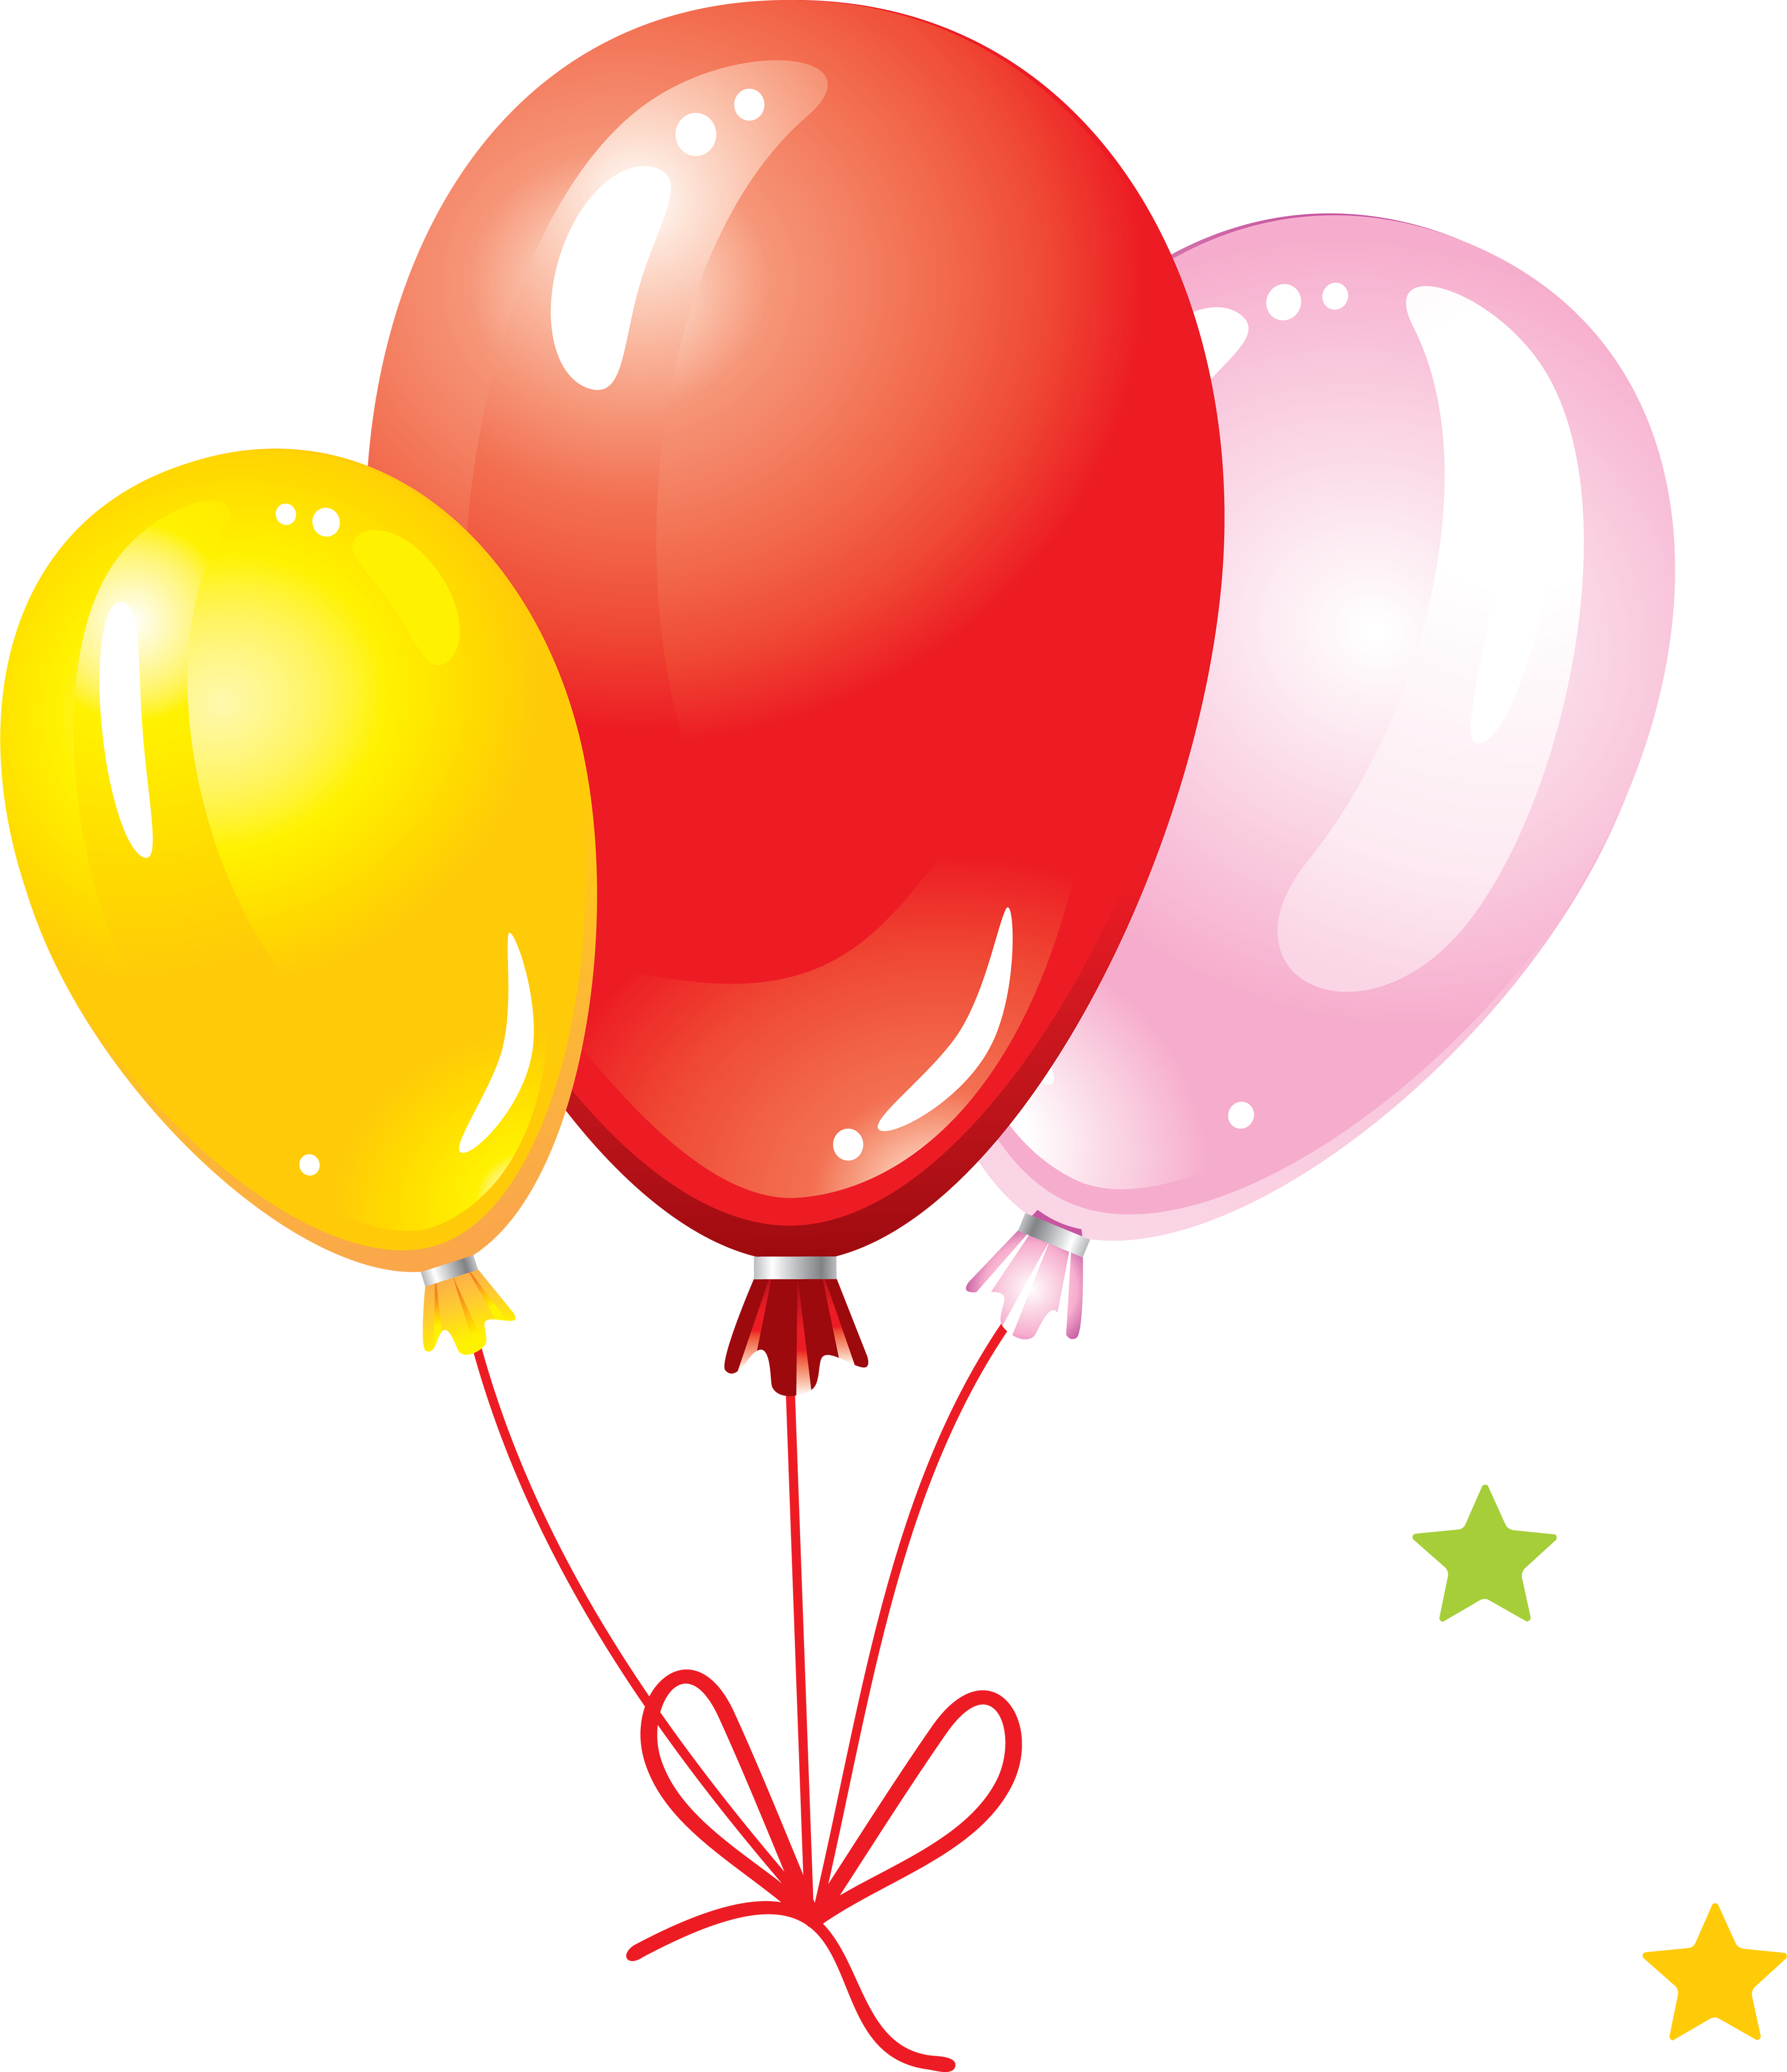 Balloon PNG image, free download, balloons